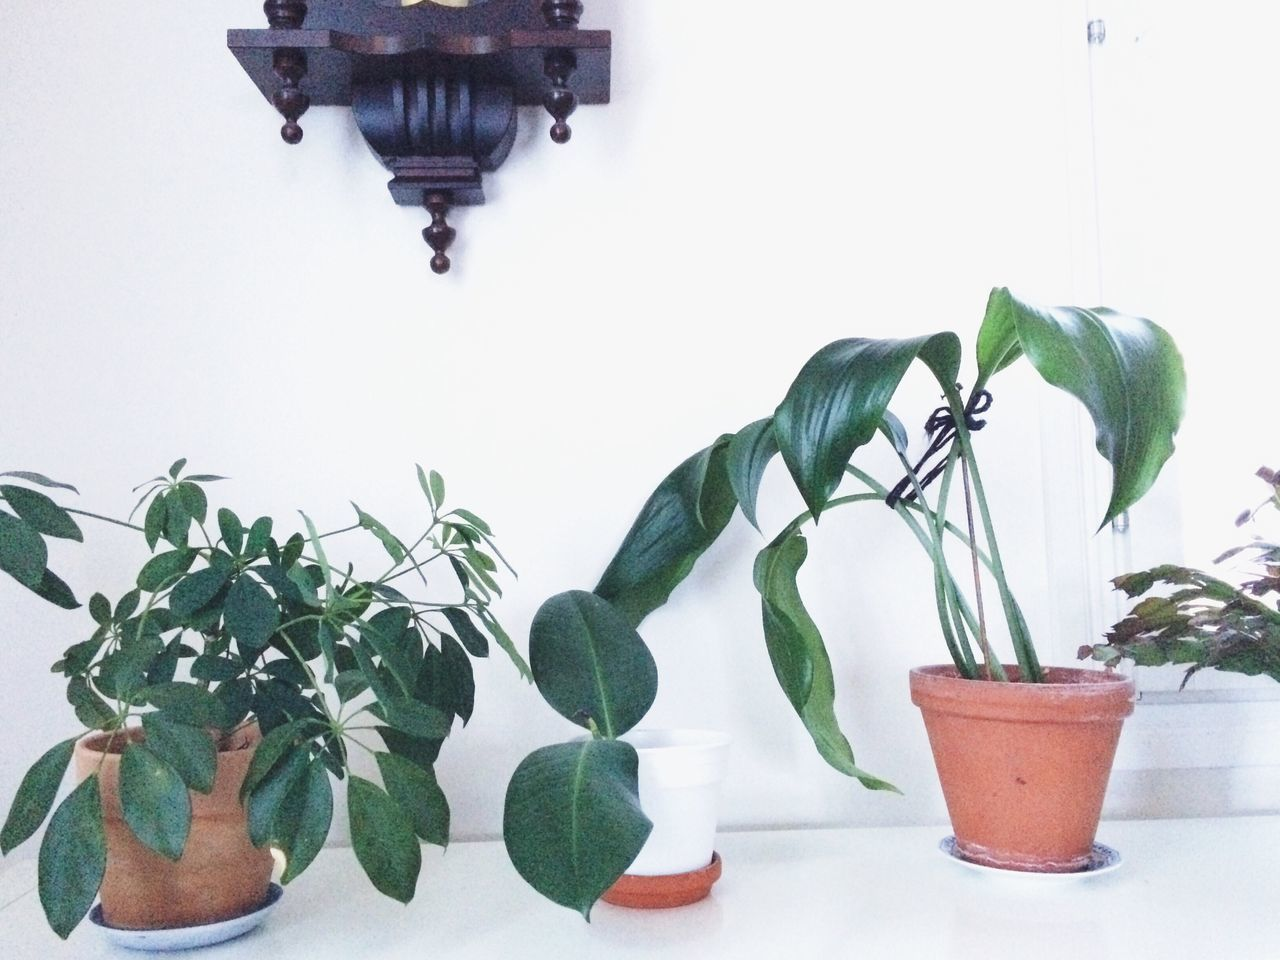 POTTED PLANTS ON THE WALL